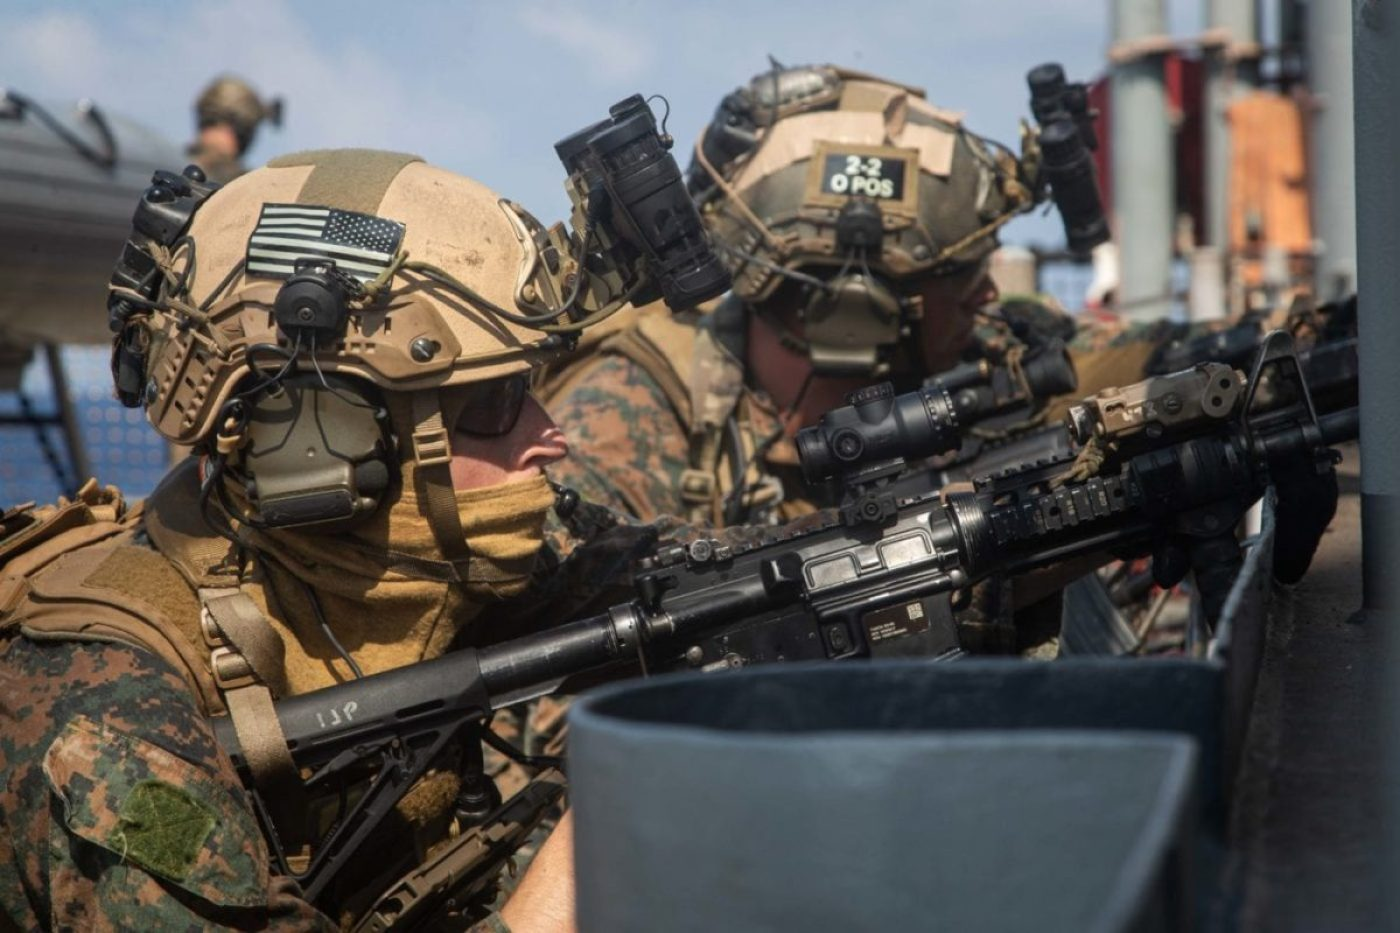 Reconnaissance Marines with the Maritime Raid Force, 31st Marine Expeditionary Unit (MEU) provide security during a simulated visit, board, search, and seizure (VBSS) mission aboard dock landing ship USS Germantown (LSD 42). (U.S. Marine Corps photo by Sgt. Danny Gonzalez)